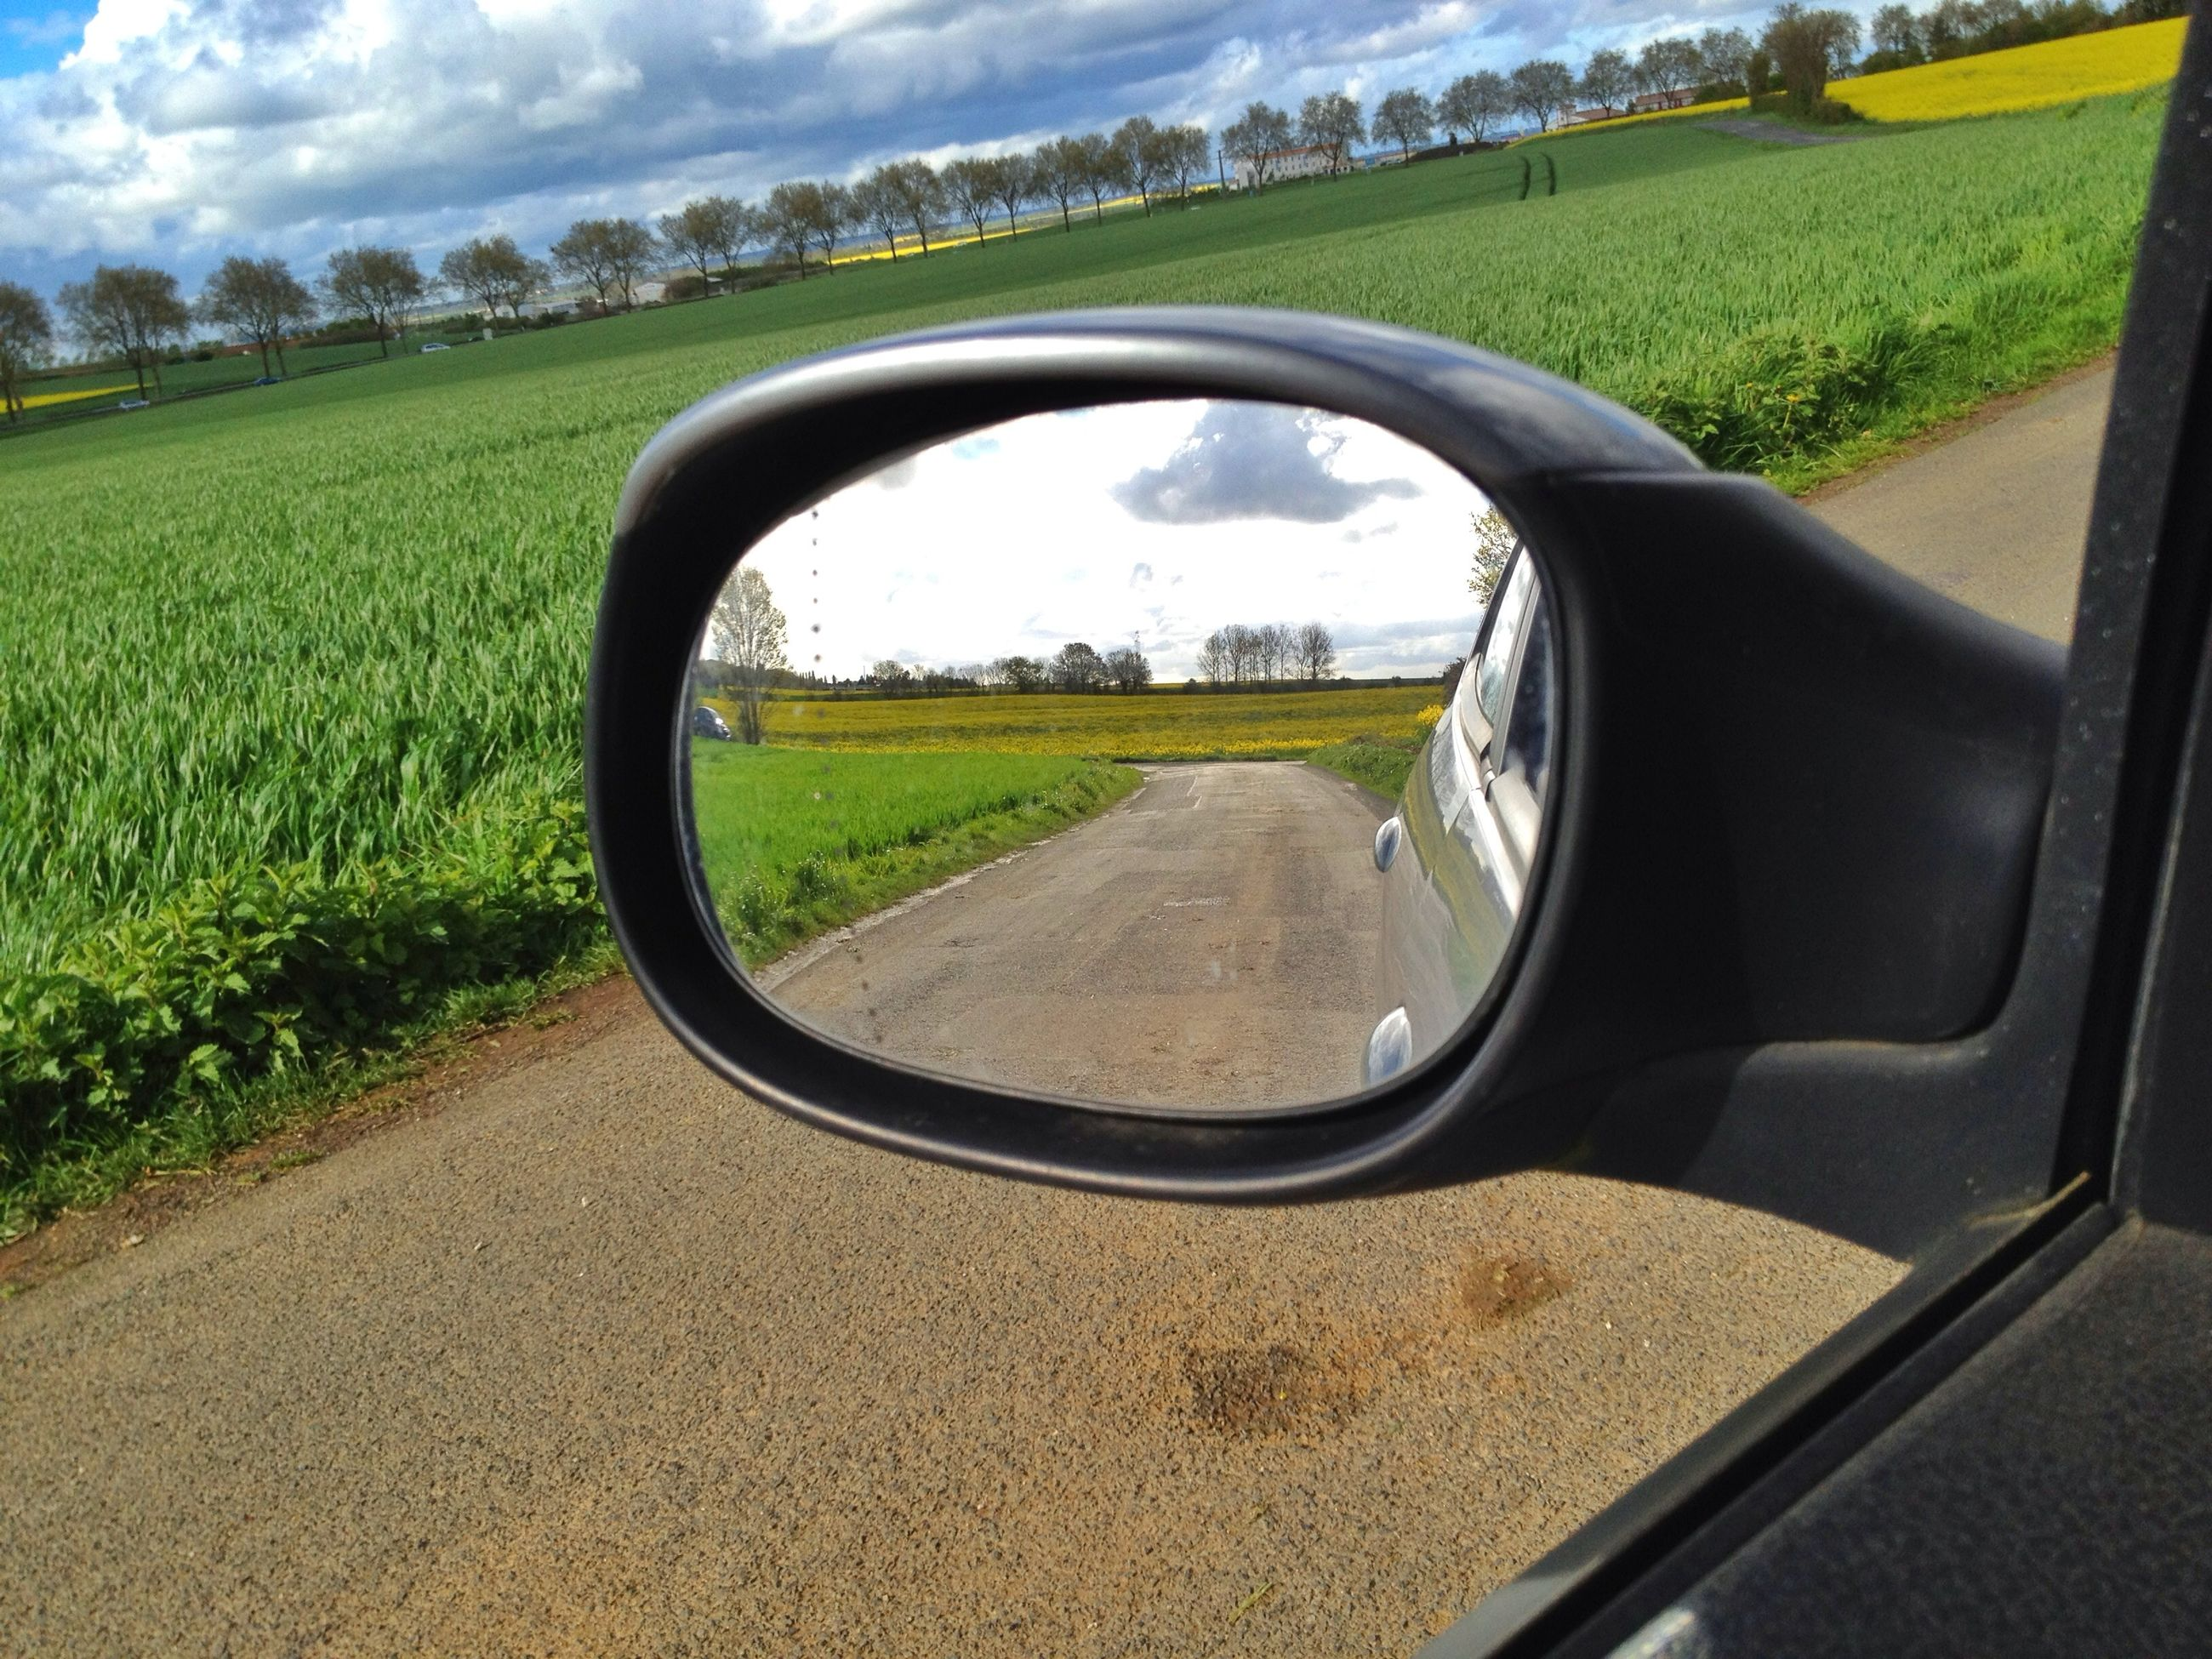 transportation, landscape, field, grass, sky, rural scene, road, land vehicle, side-view mirror, tree, mode of transport, car, nature, tranquil scene, cloud - sky, tranquility, grassy, countryside, scenics, day